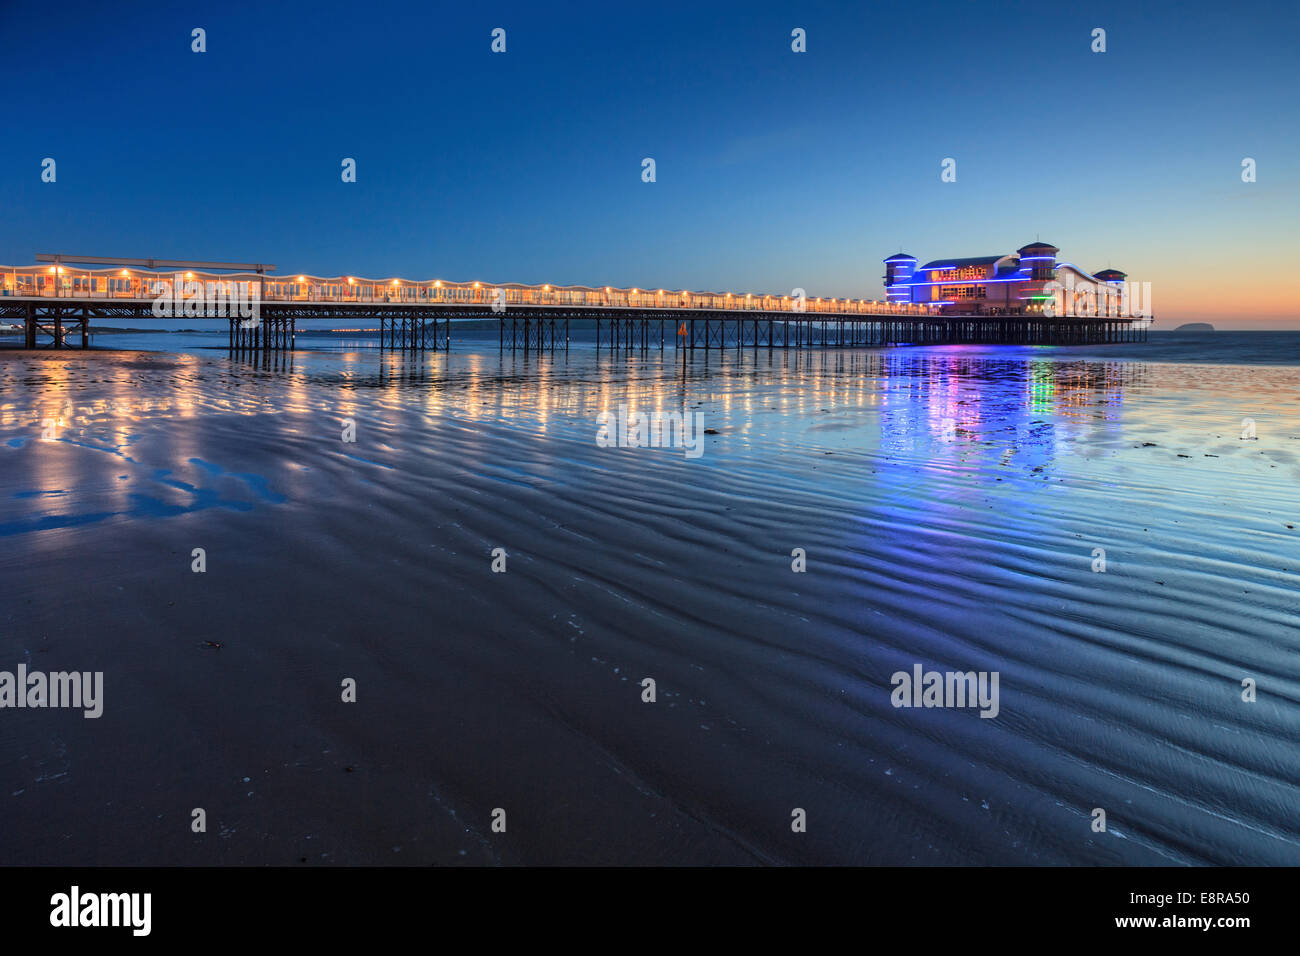 The rebuilt Grand Pier at Weston-Super-Mare captured about 45 minutes after sunset. - Stock Image